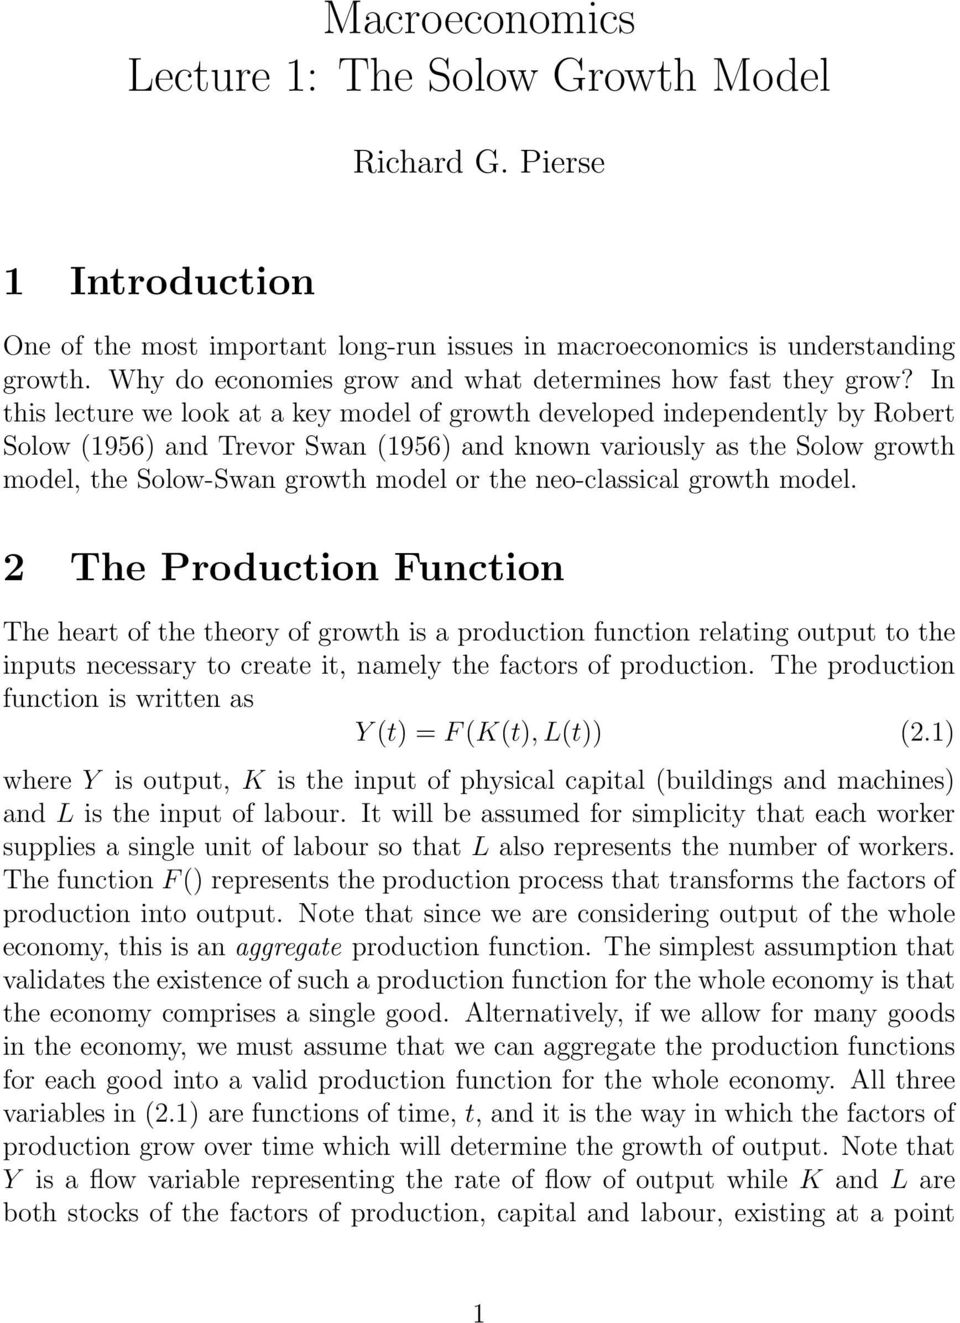 In this lecture we look at a key model of growth developed independently by Robert Solow (1956) and Trevor Swan (1956) and known variously as the Solow growth model, the Solow-Swan growth model or